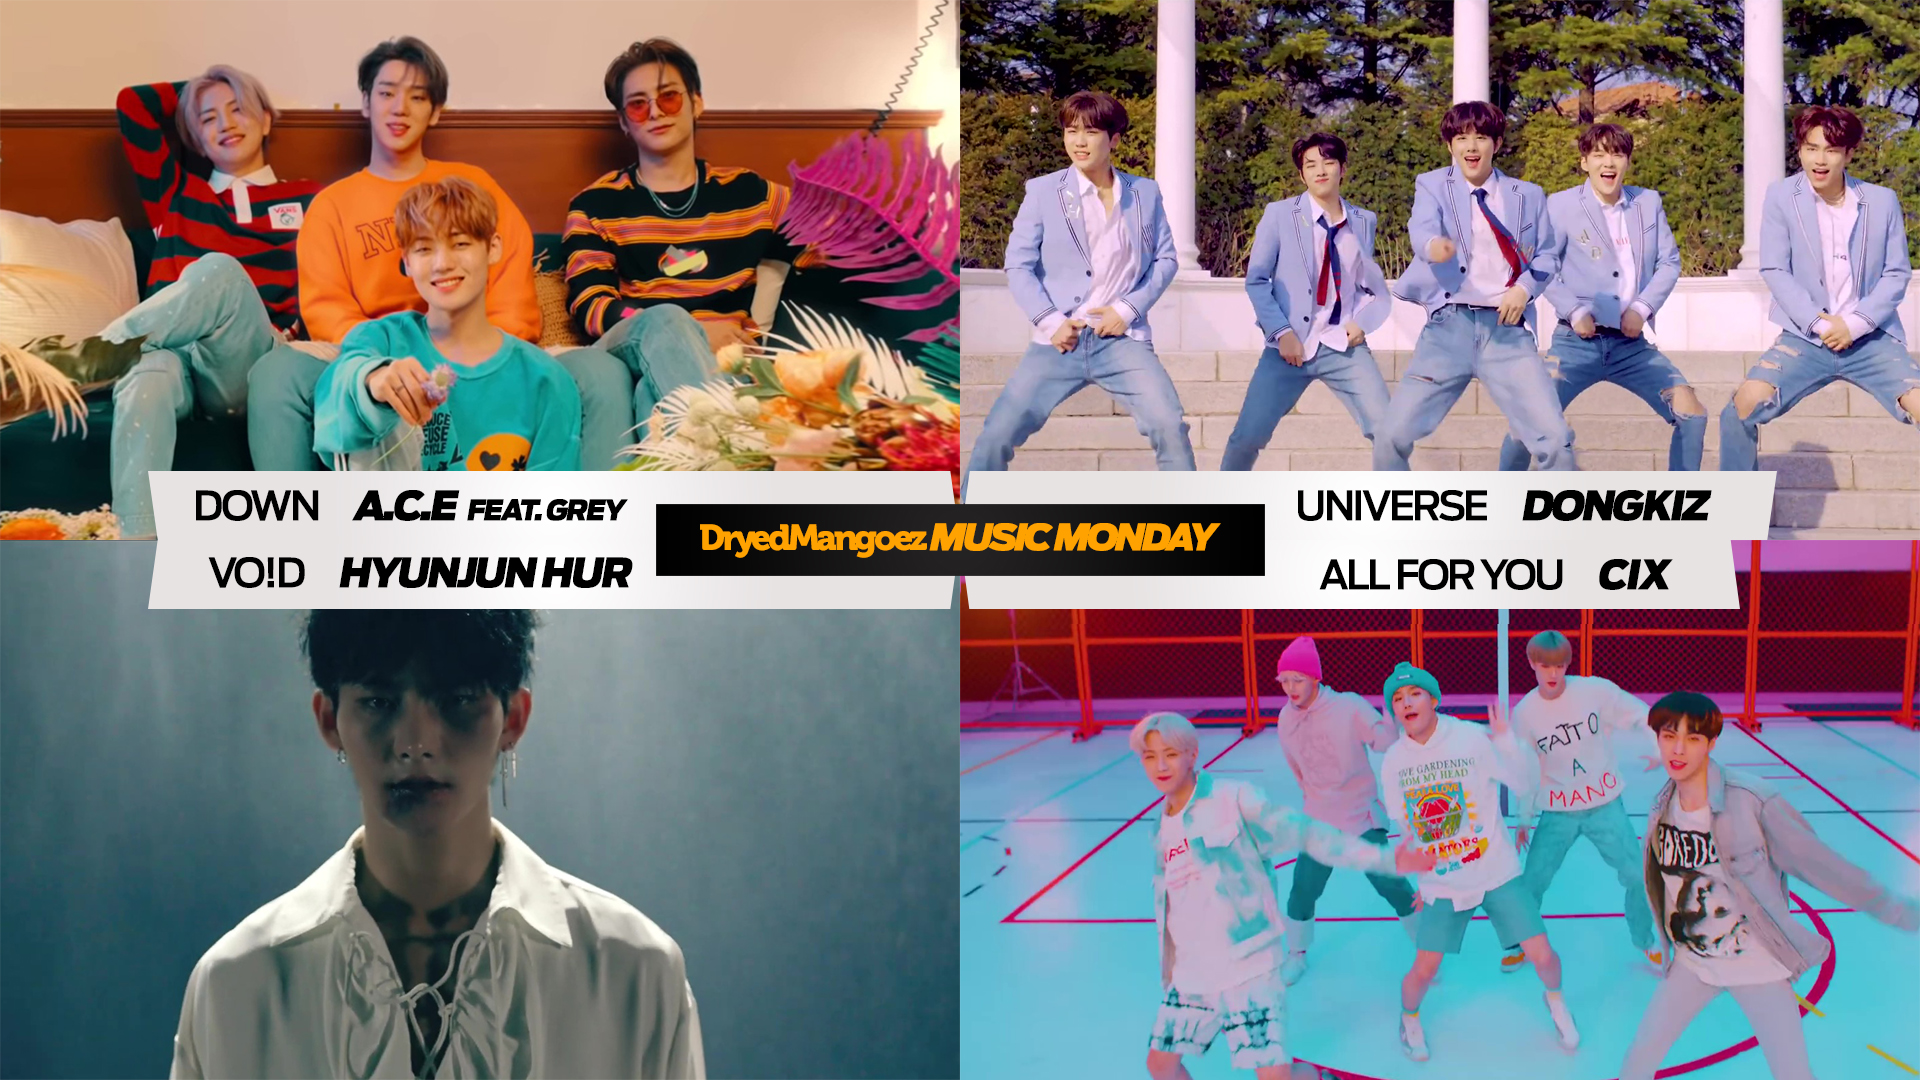 Music Monday, April 19, 2021 Extra – Four More Excellent Tracks for the Week from A.C.E, DONGKIZ, Hyunjun Hur and CIX!